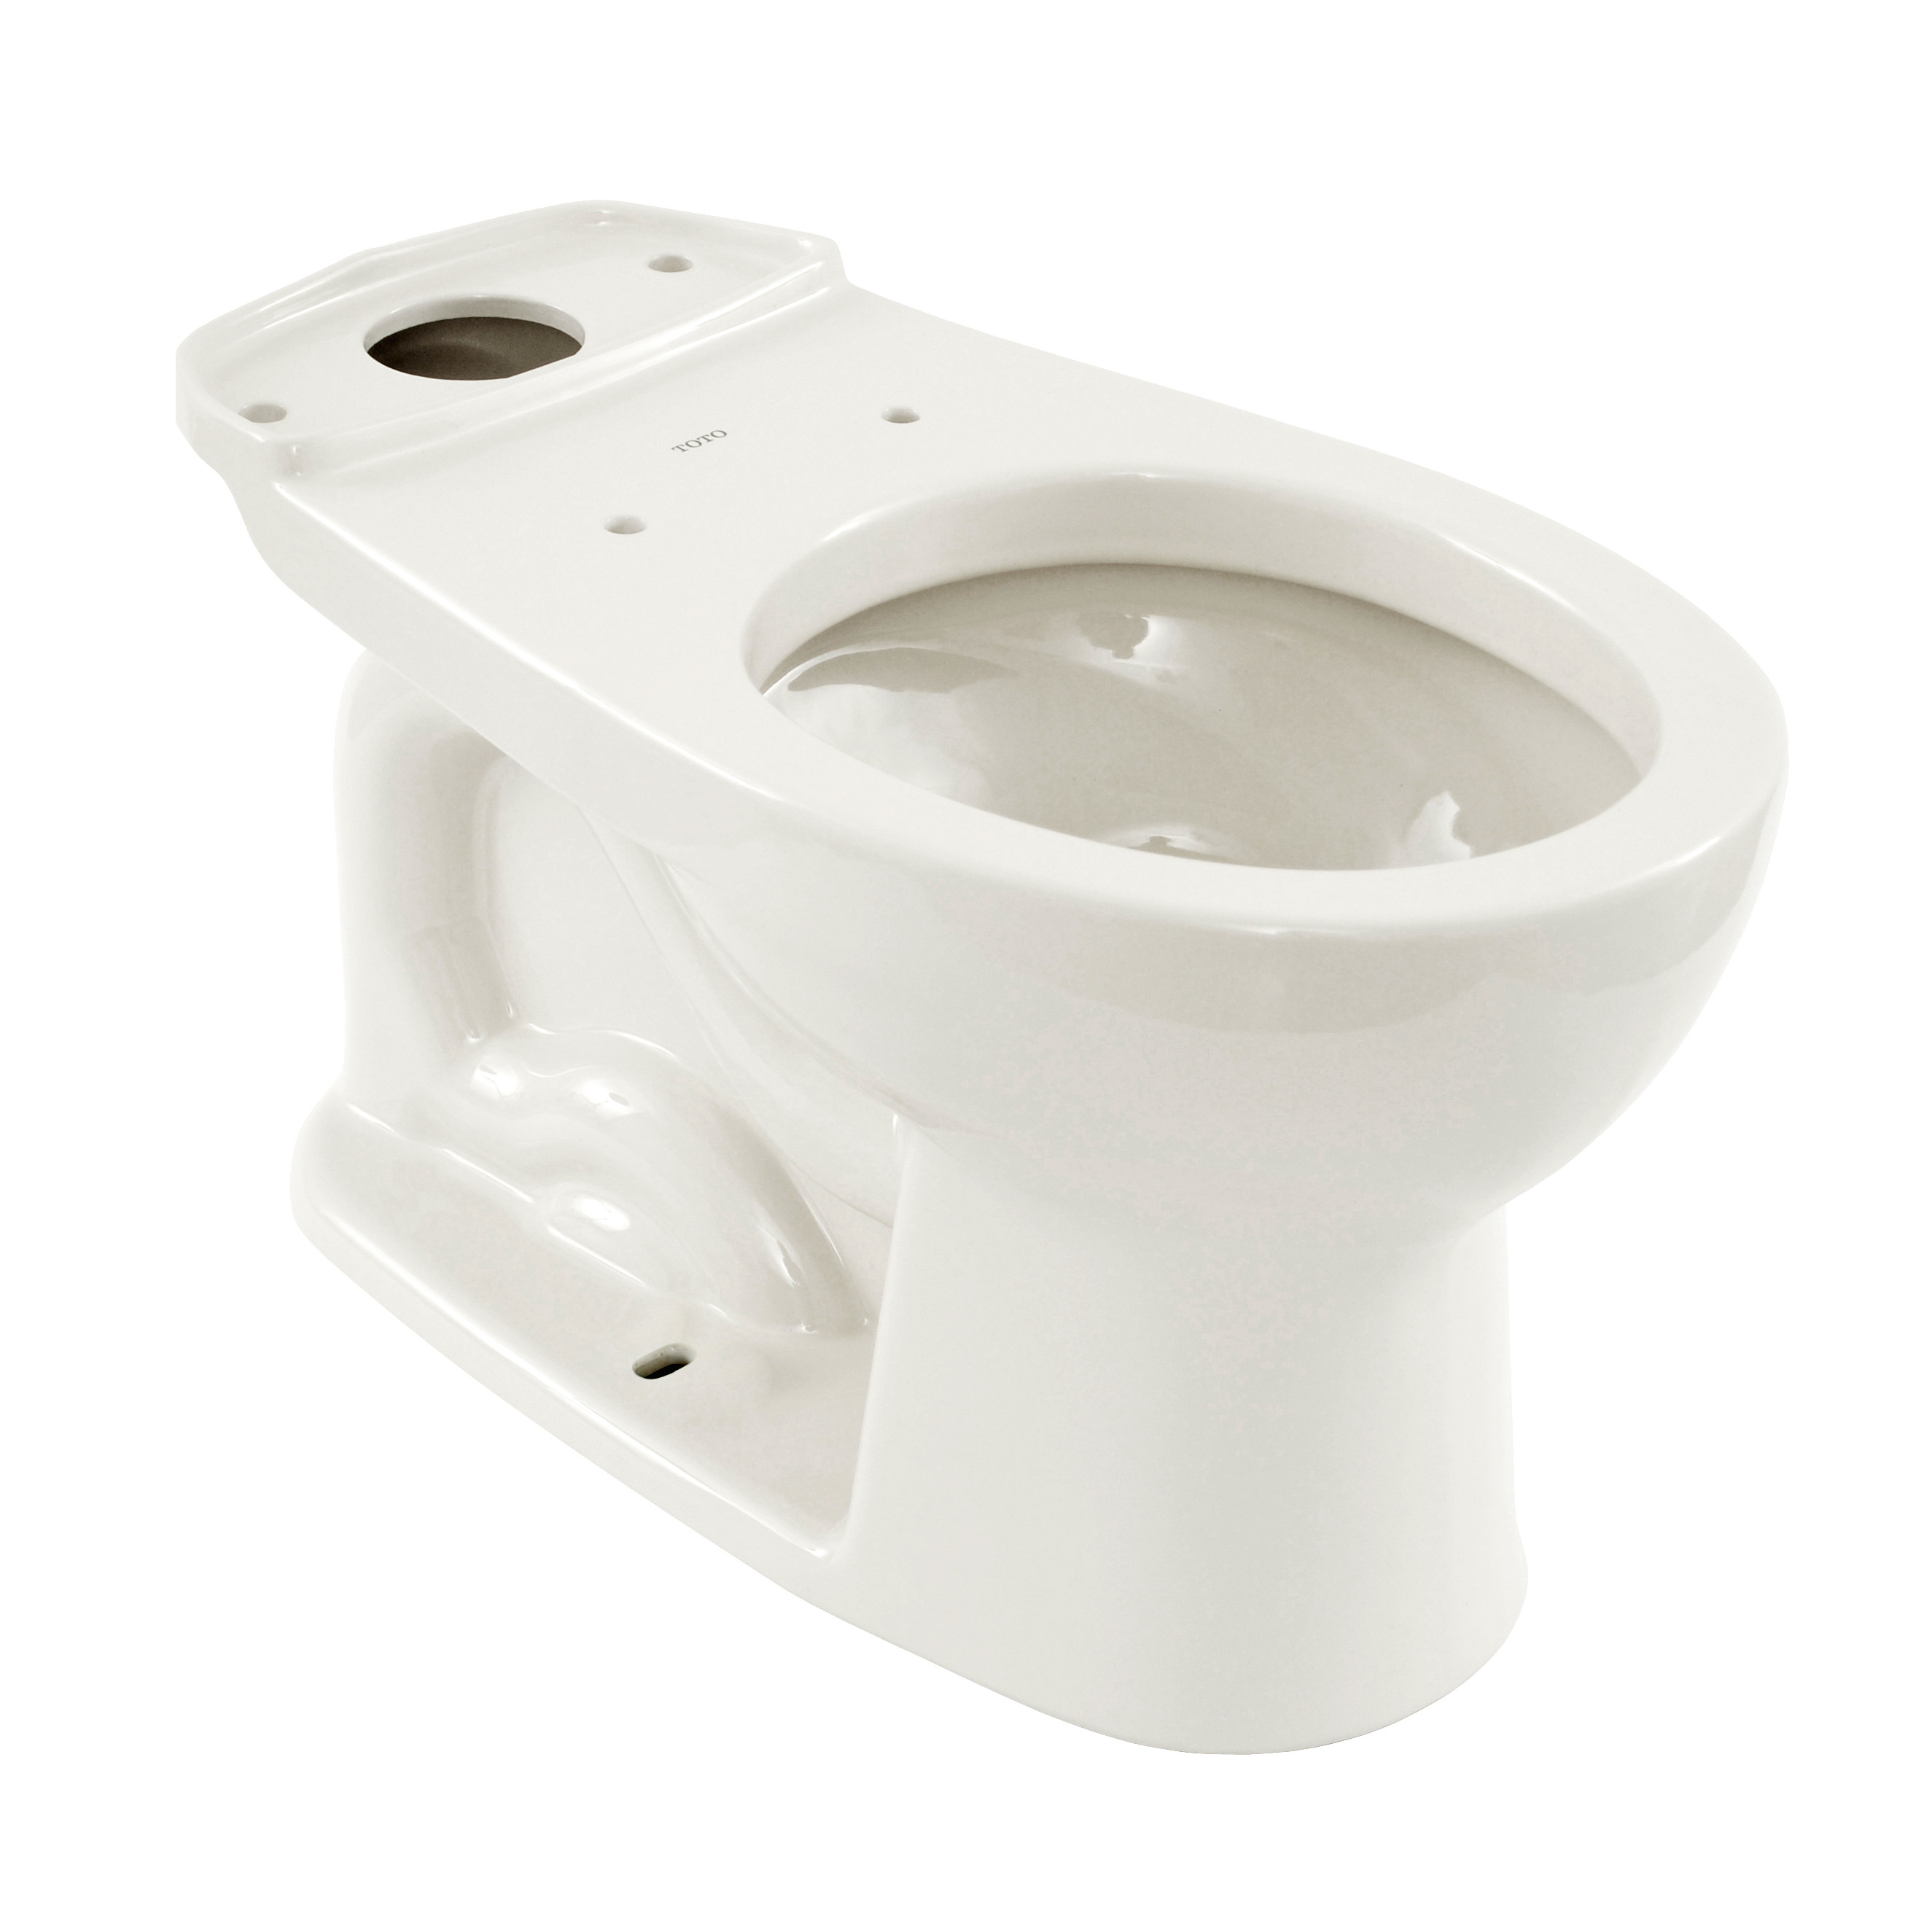 Saniflo | Saniflo Repairs and Service | Macerating Toilet